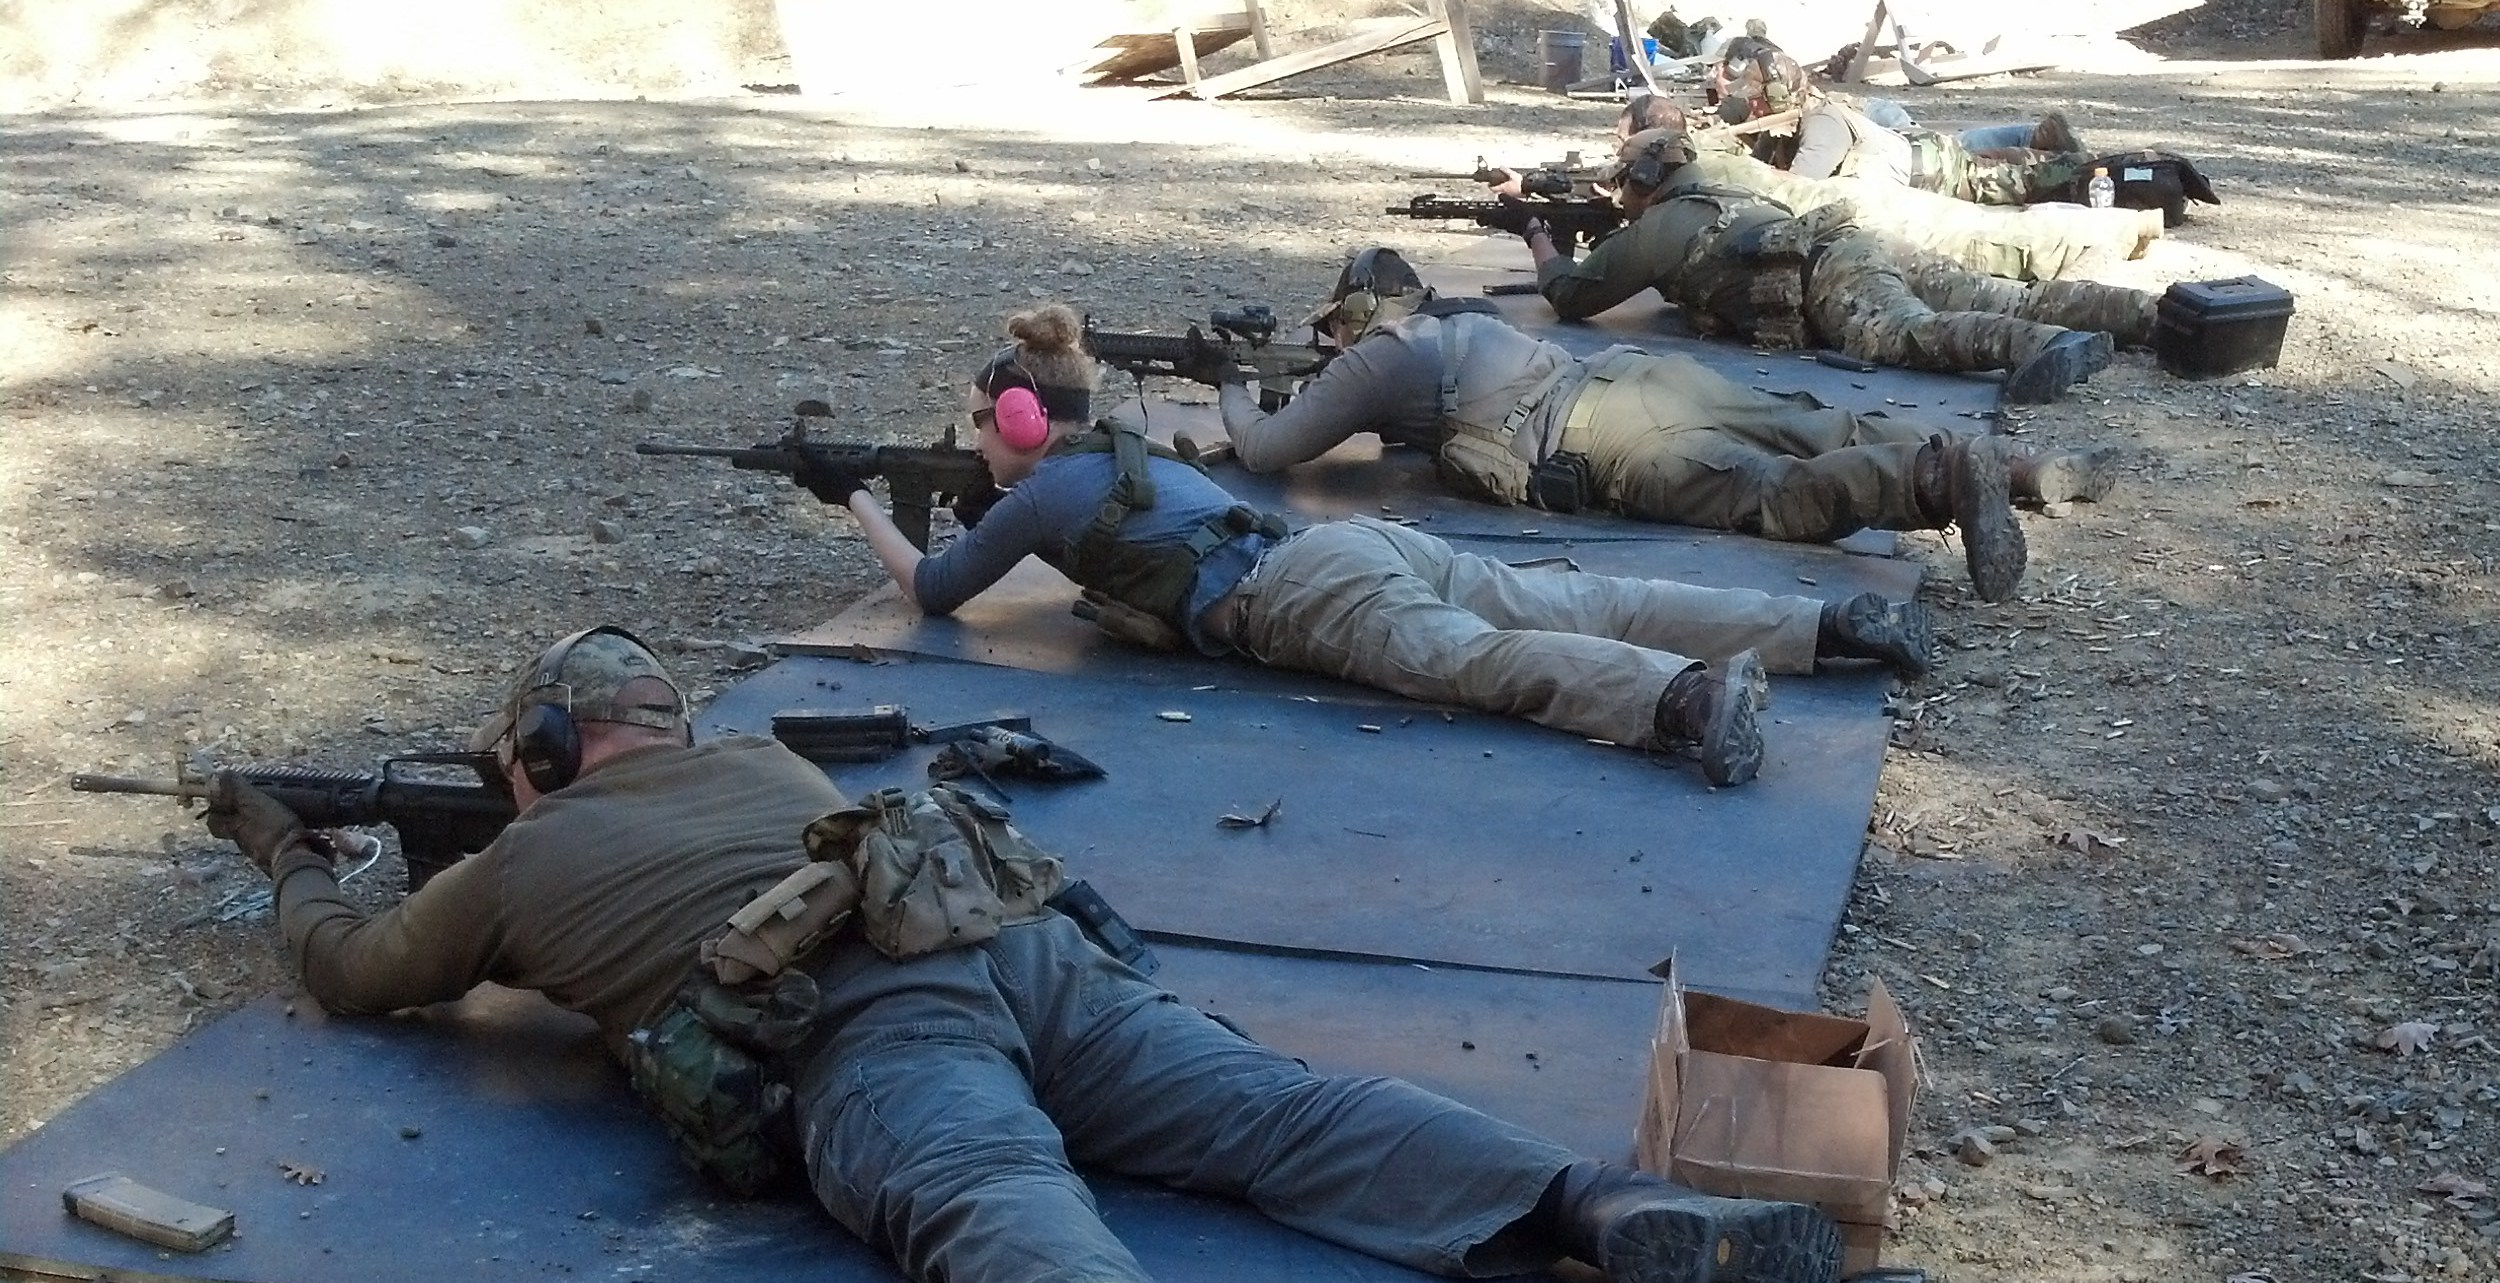 Review of MVT Combat Rifle Skills Class, by T.B.